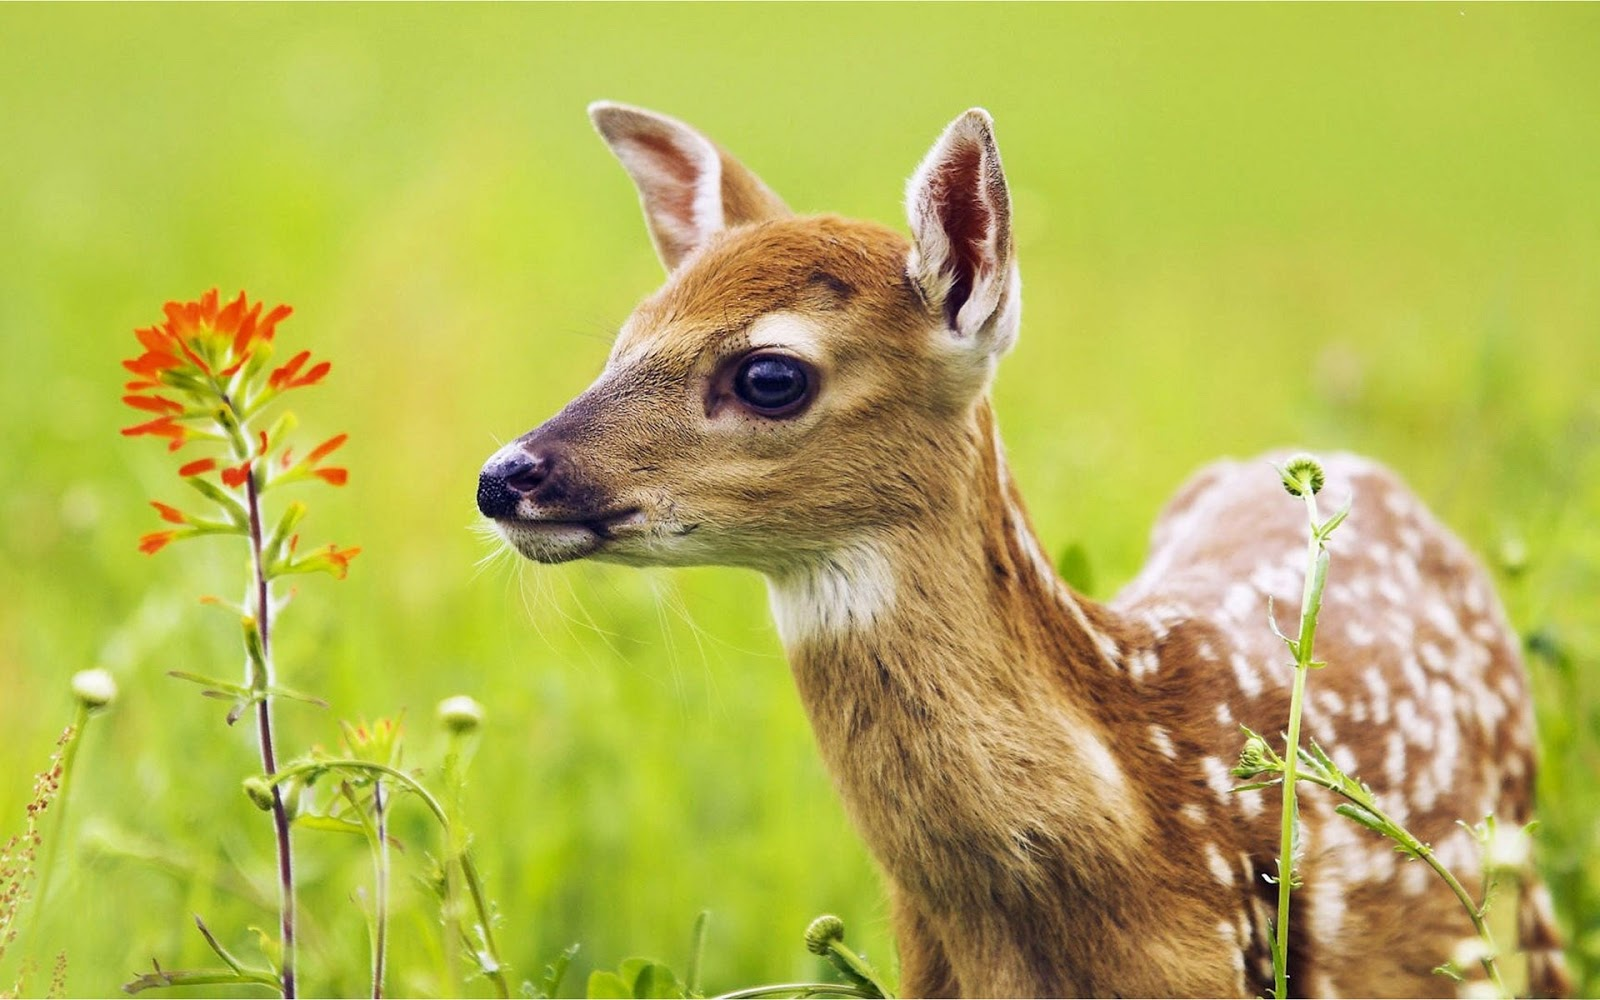 Deer Wallpapers Android Apps on Google Play HD Wallpapers